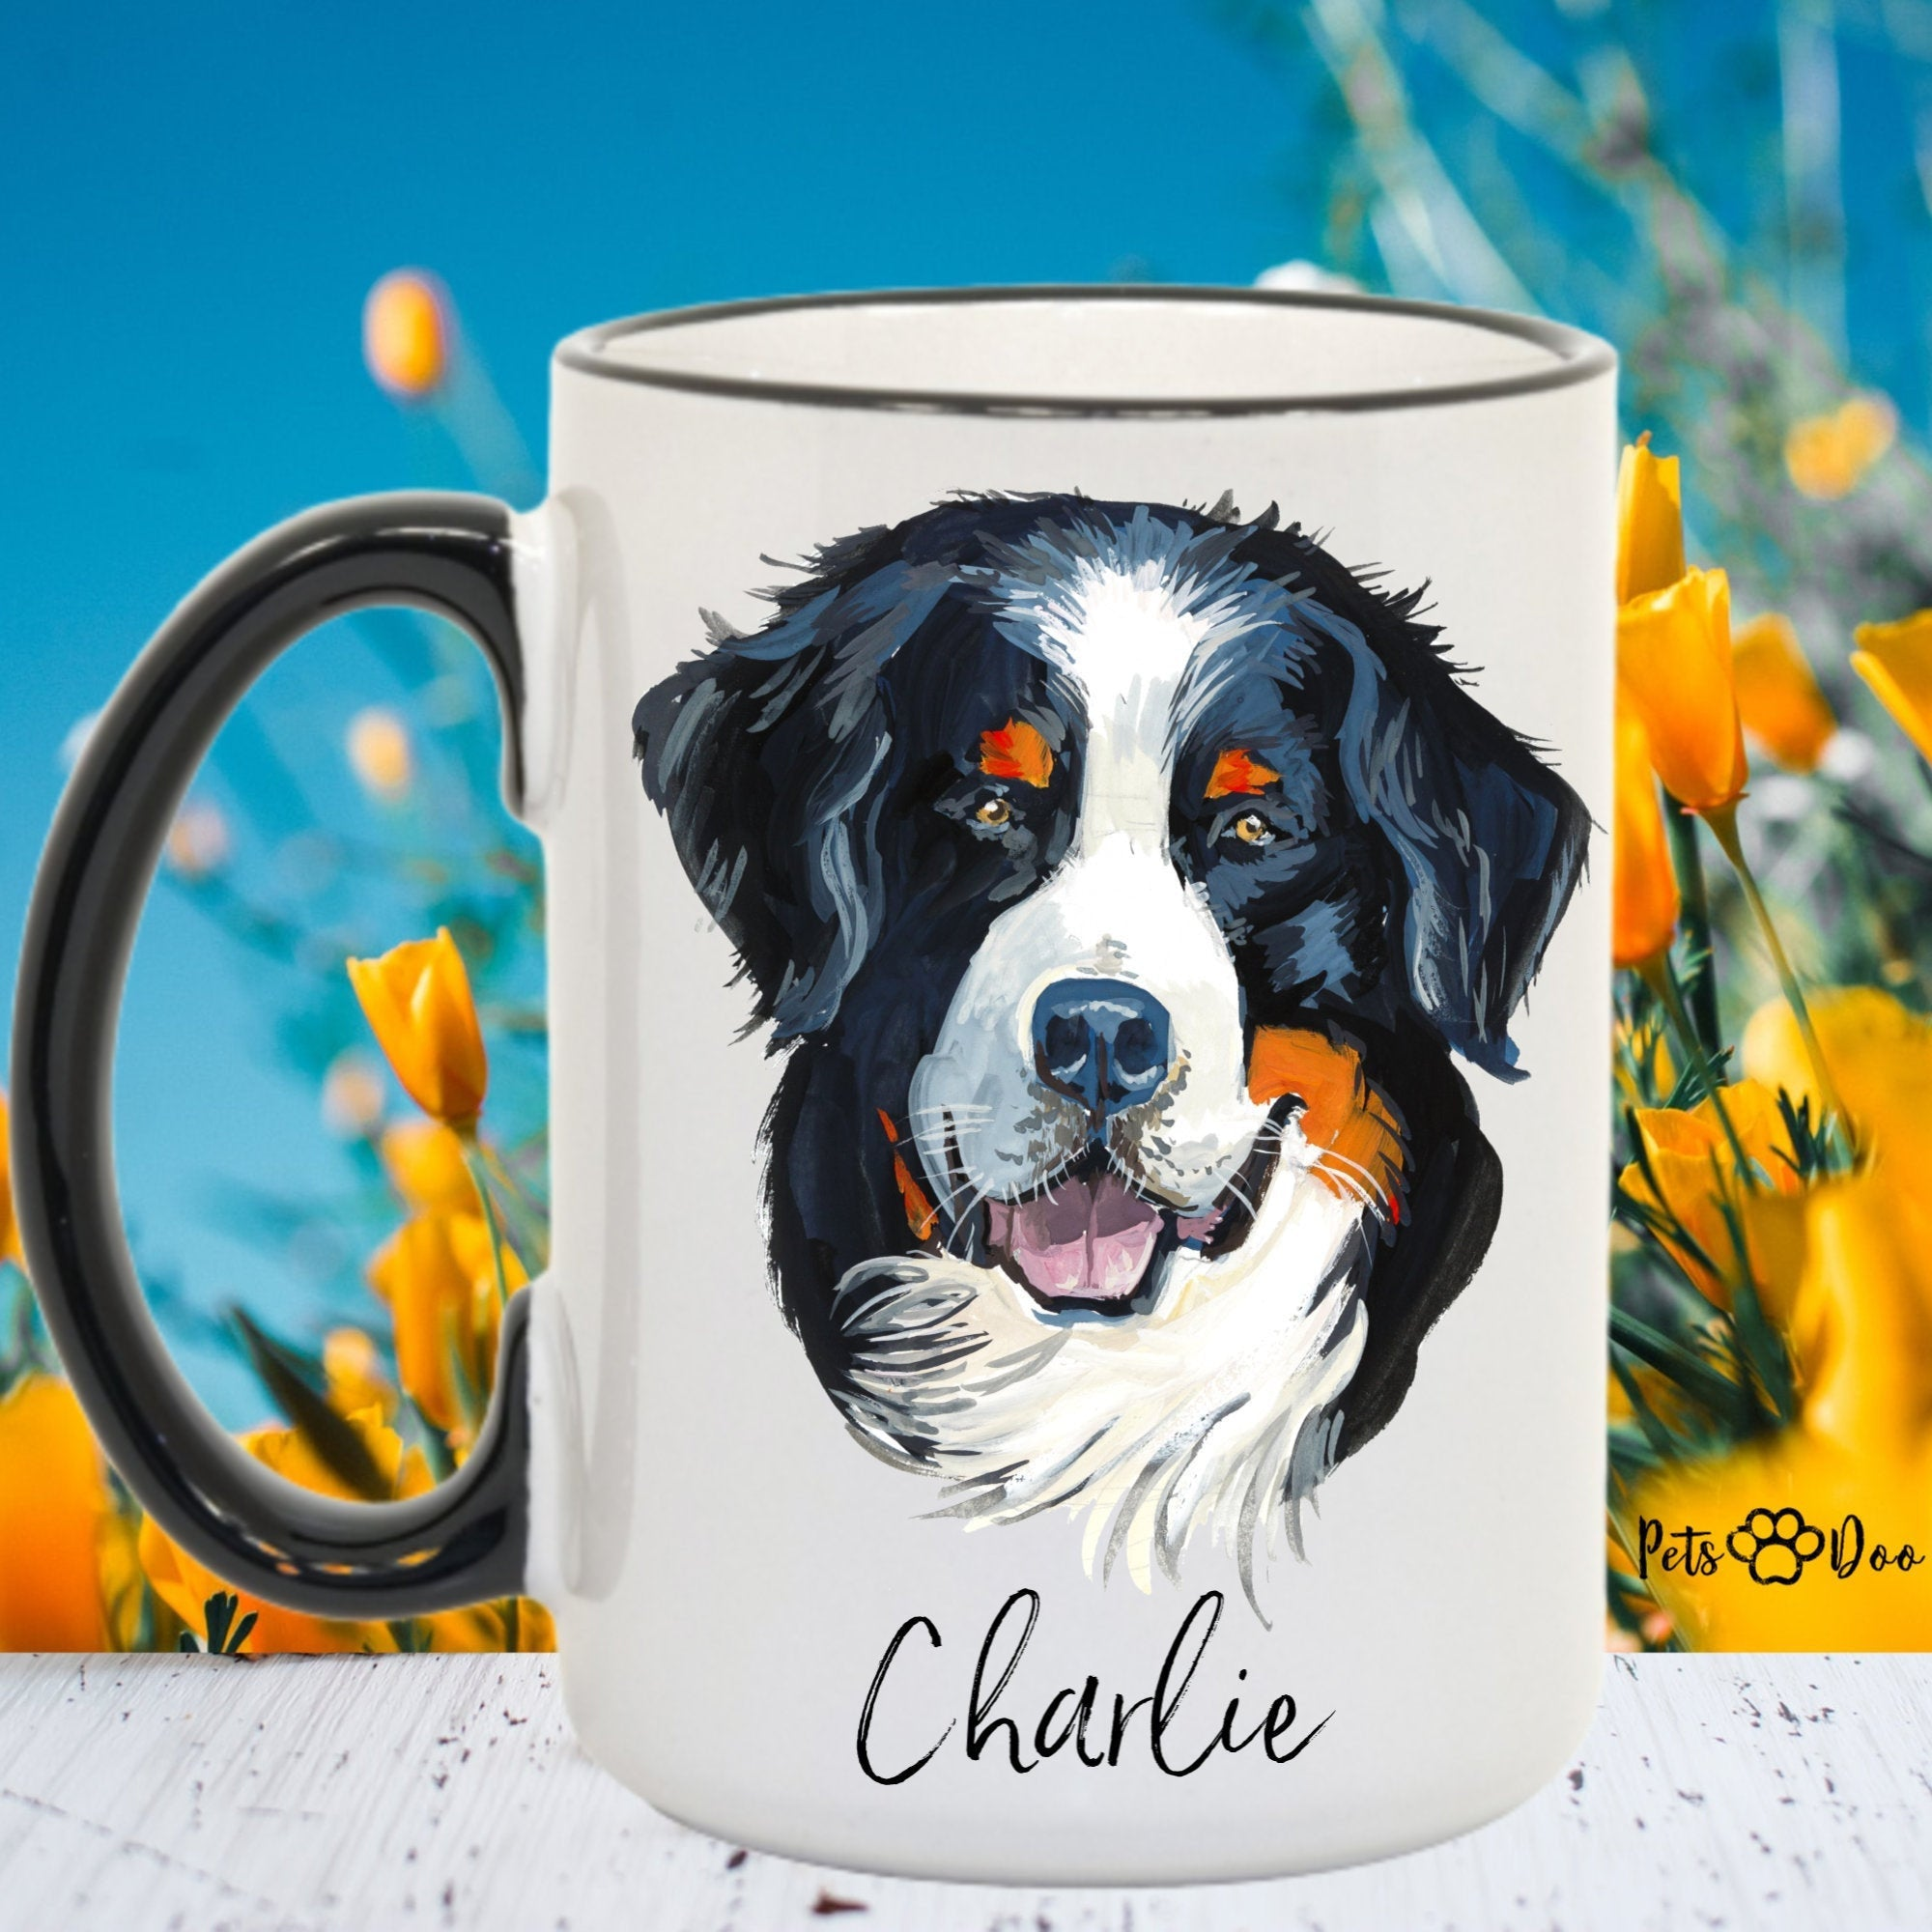 Bernese Mountain Dog Mug - Bernese Mountain Dog Gifts - Personalized Dog Dad Mug  - Dog Mom Owner Gift - Gift Ideas for Dog Lover - PetsDoo